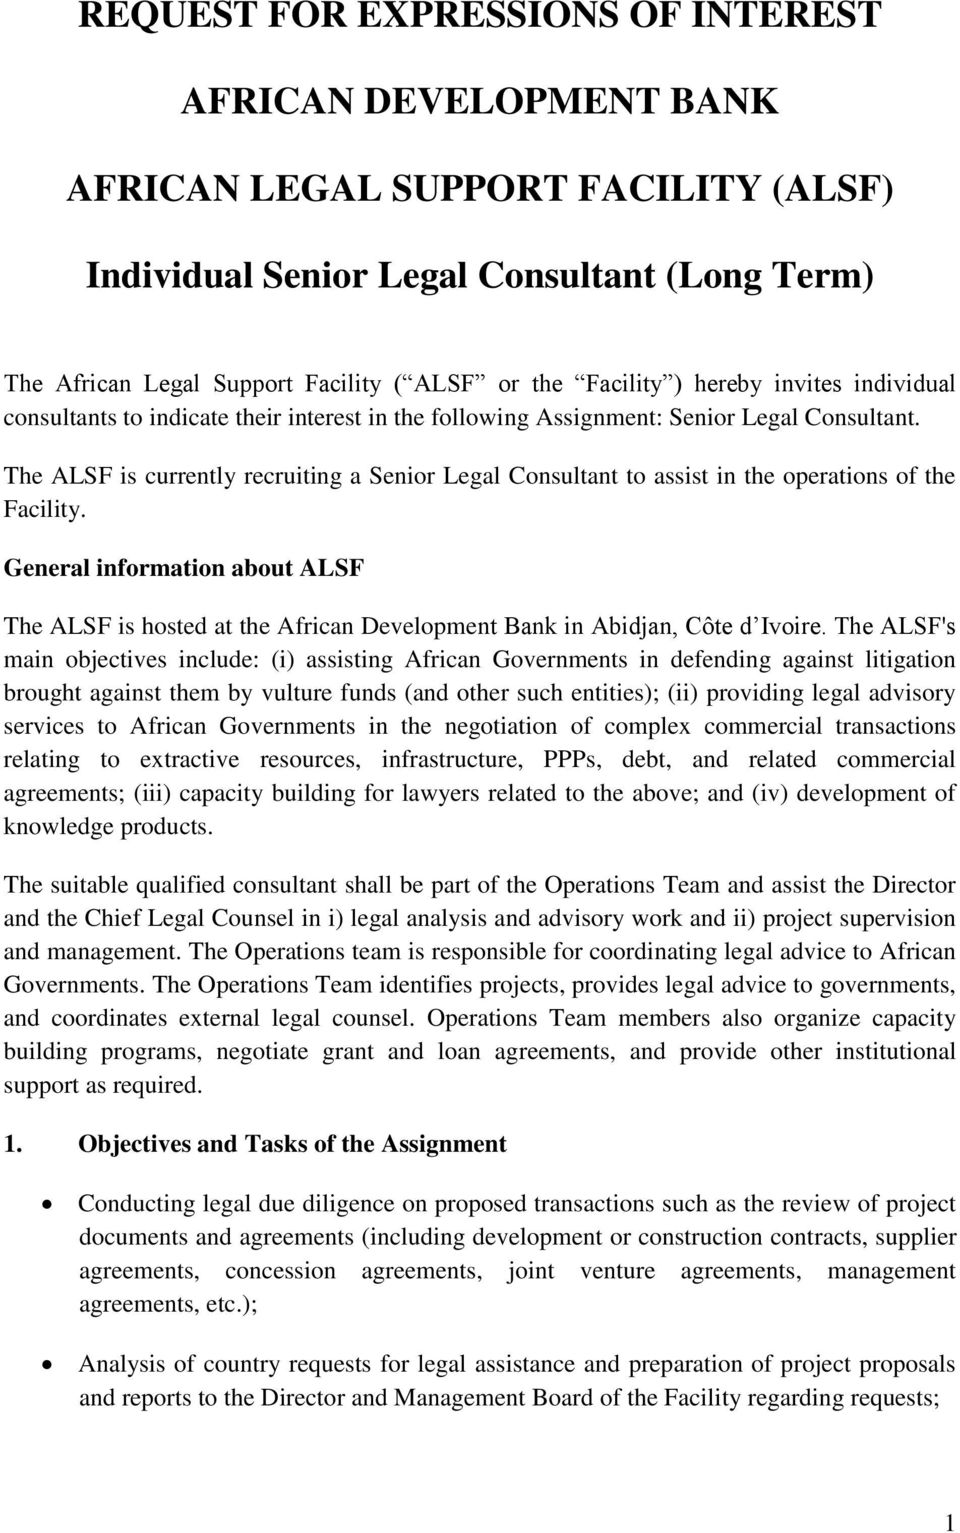 The ALSF is currently recruiting a Senior Legal Consultant to assist in the operations of the Facility.